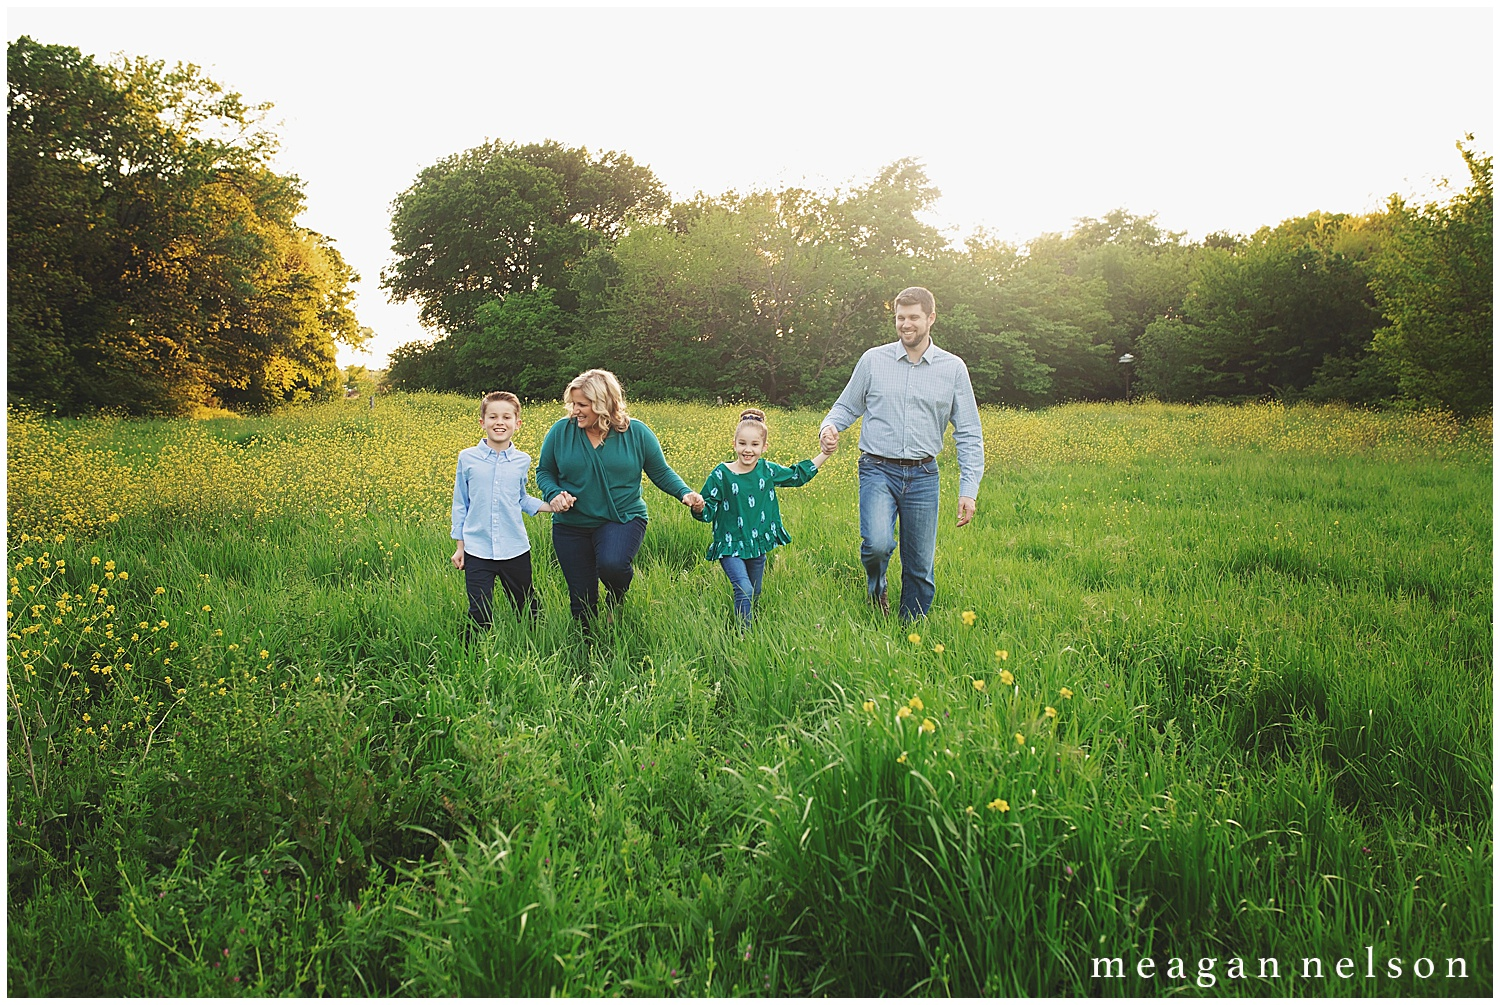 fort_worth_family_photographer_keller_pointe026.jpg